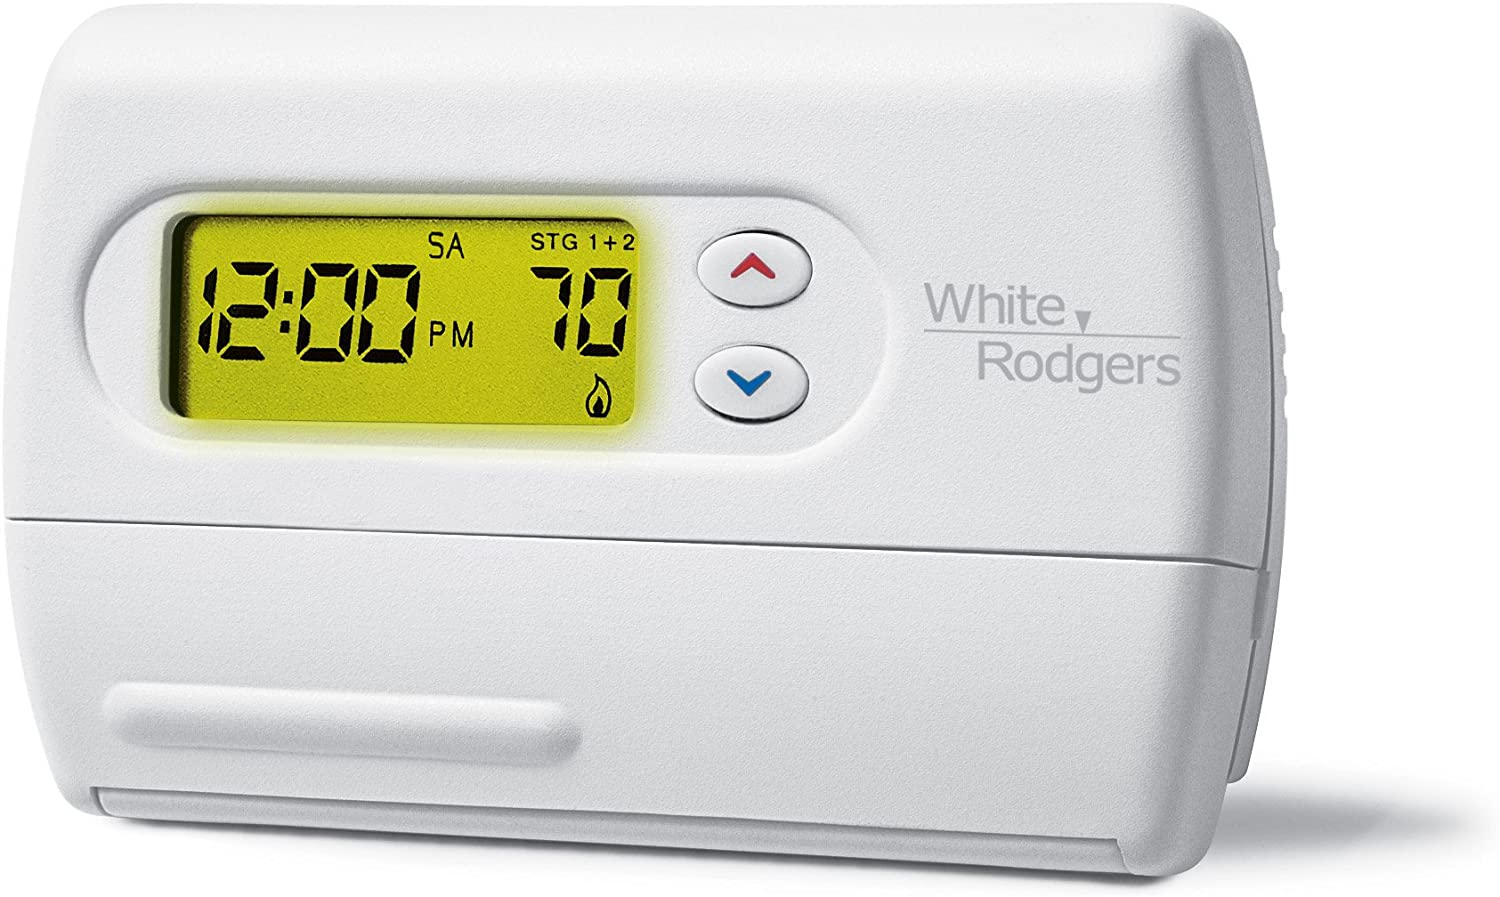 Emerson 1F85-277 Universal Programmable Thermostat Ranking integrated 1st place with a Classic Heat 3